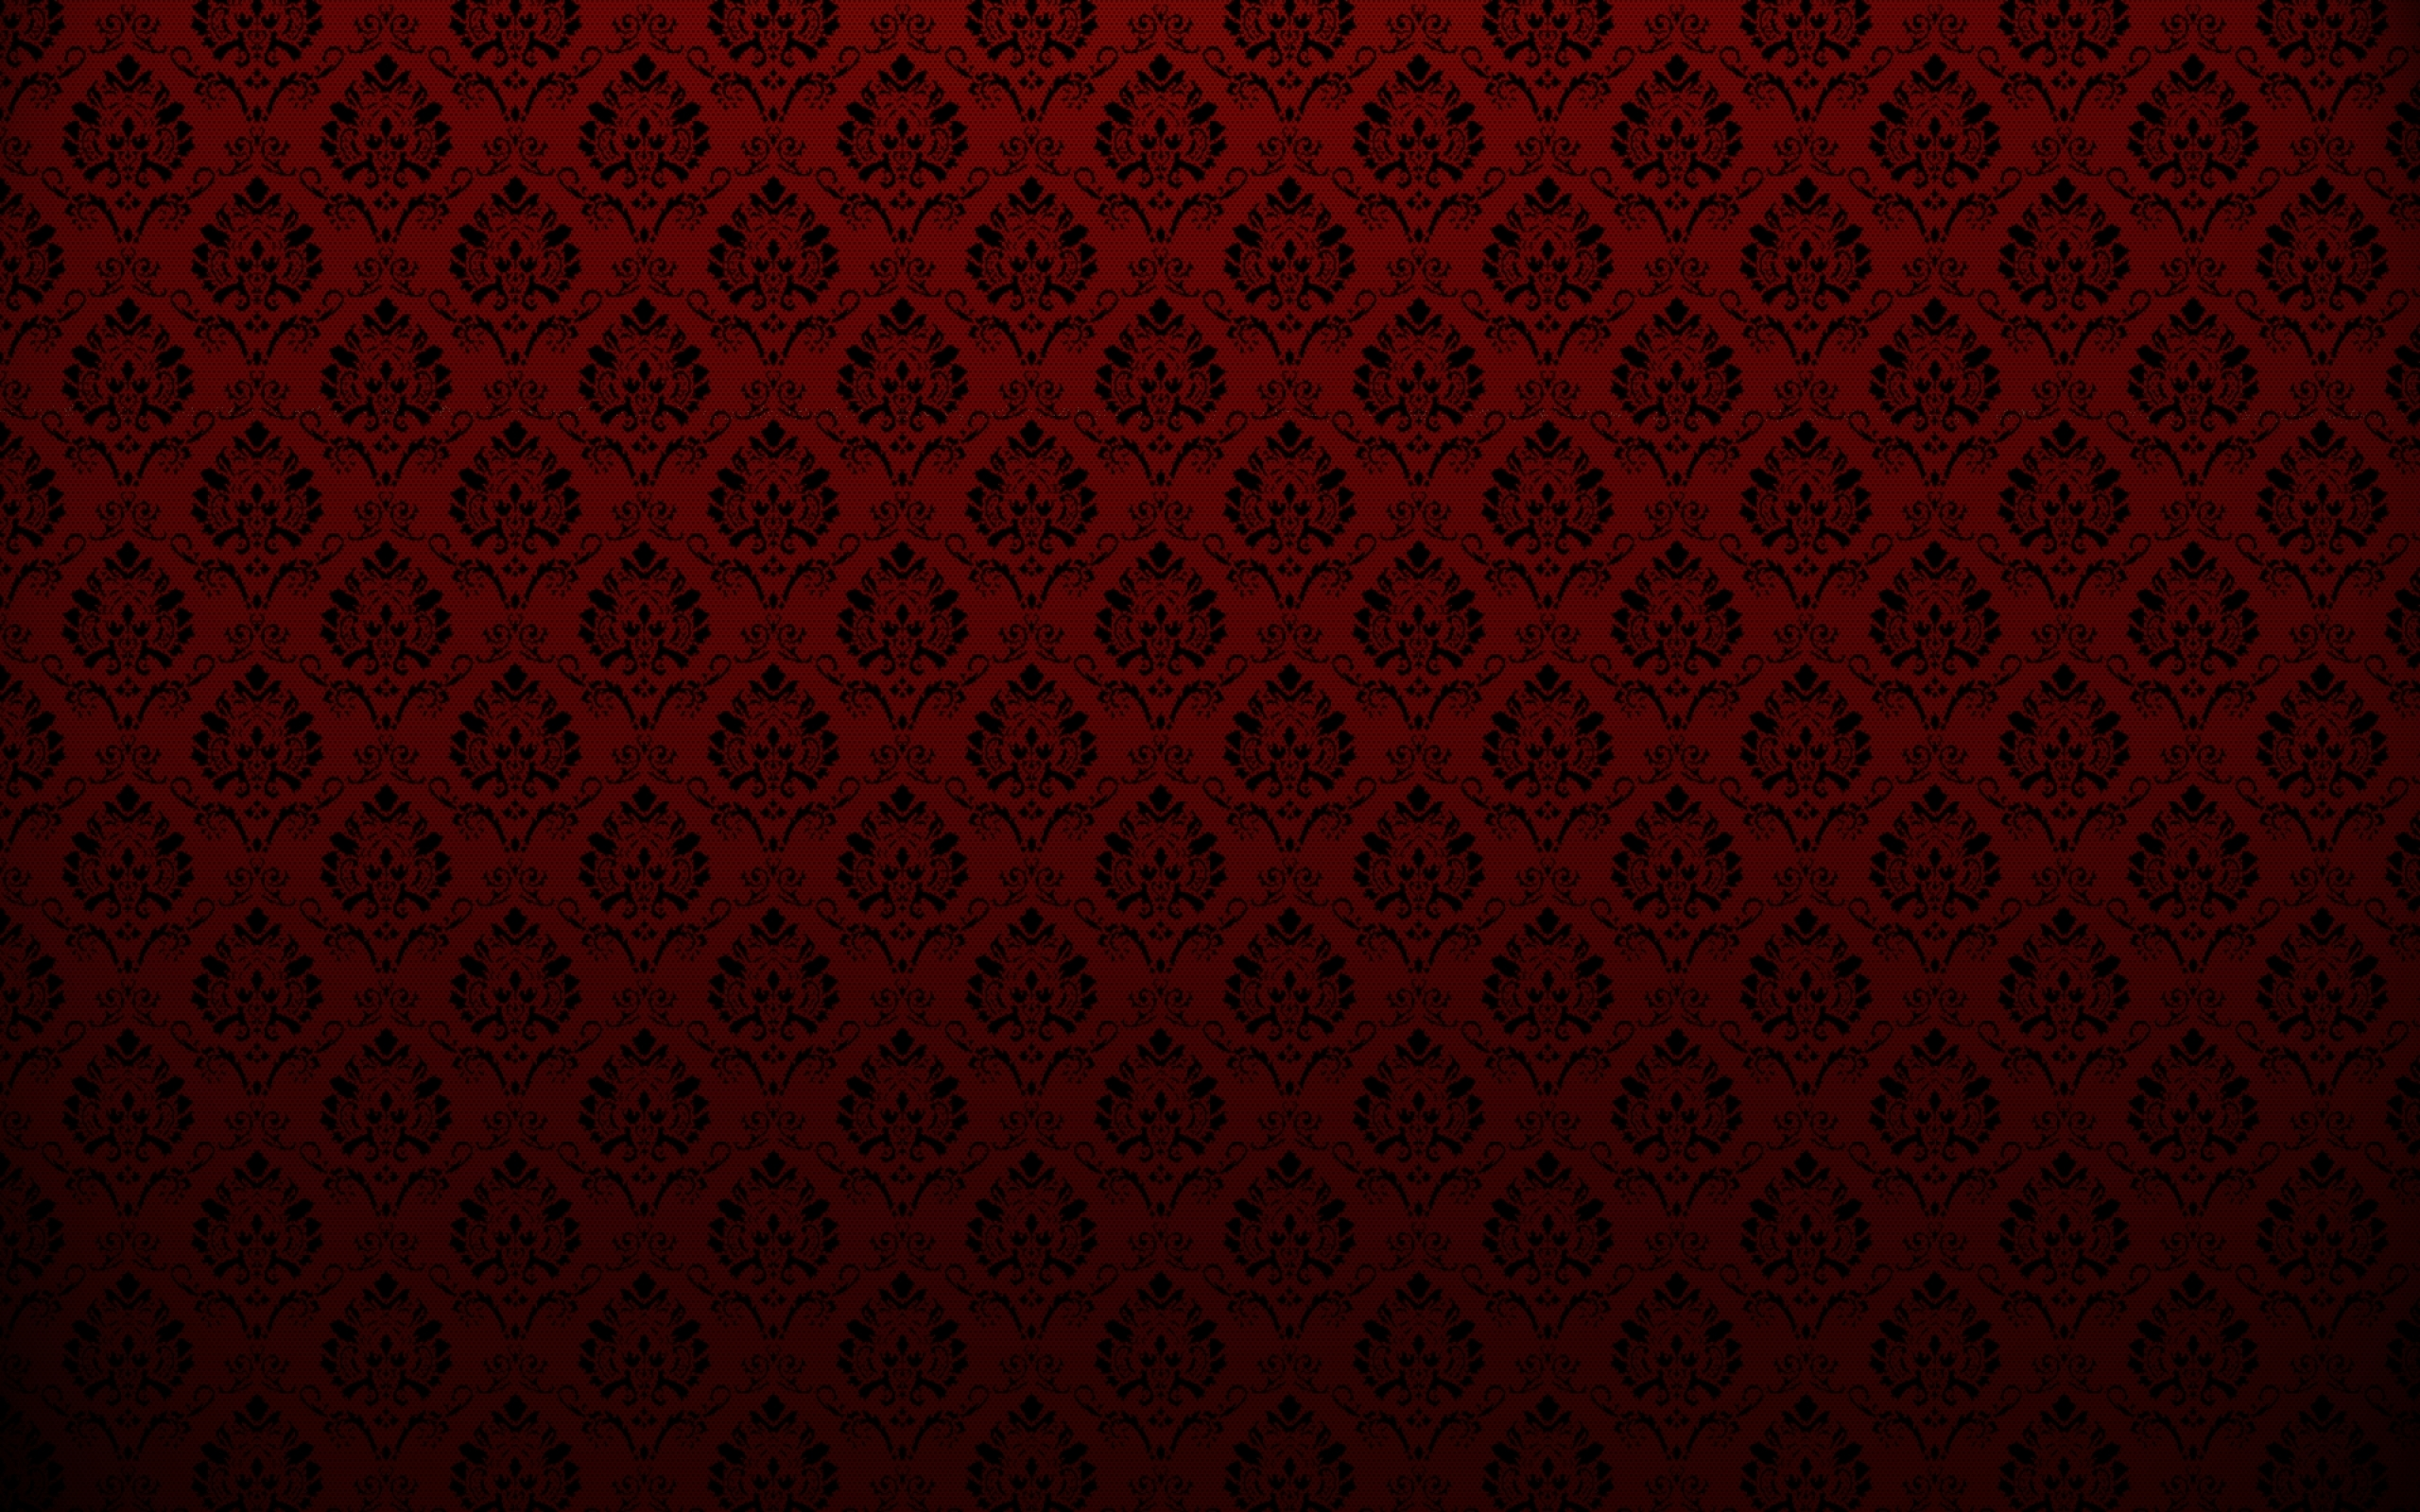 Red Wallpaper Design